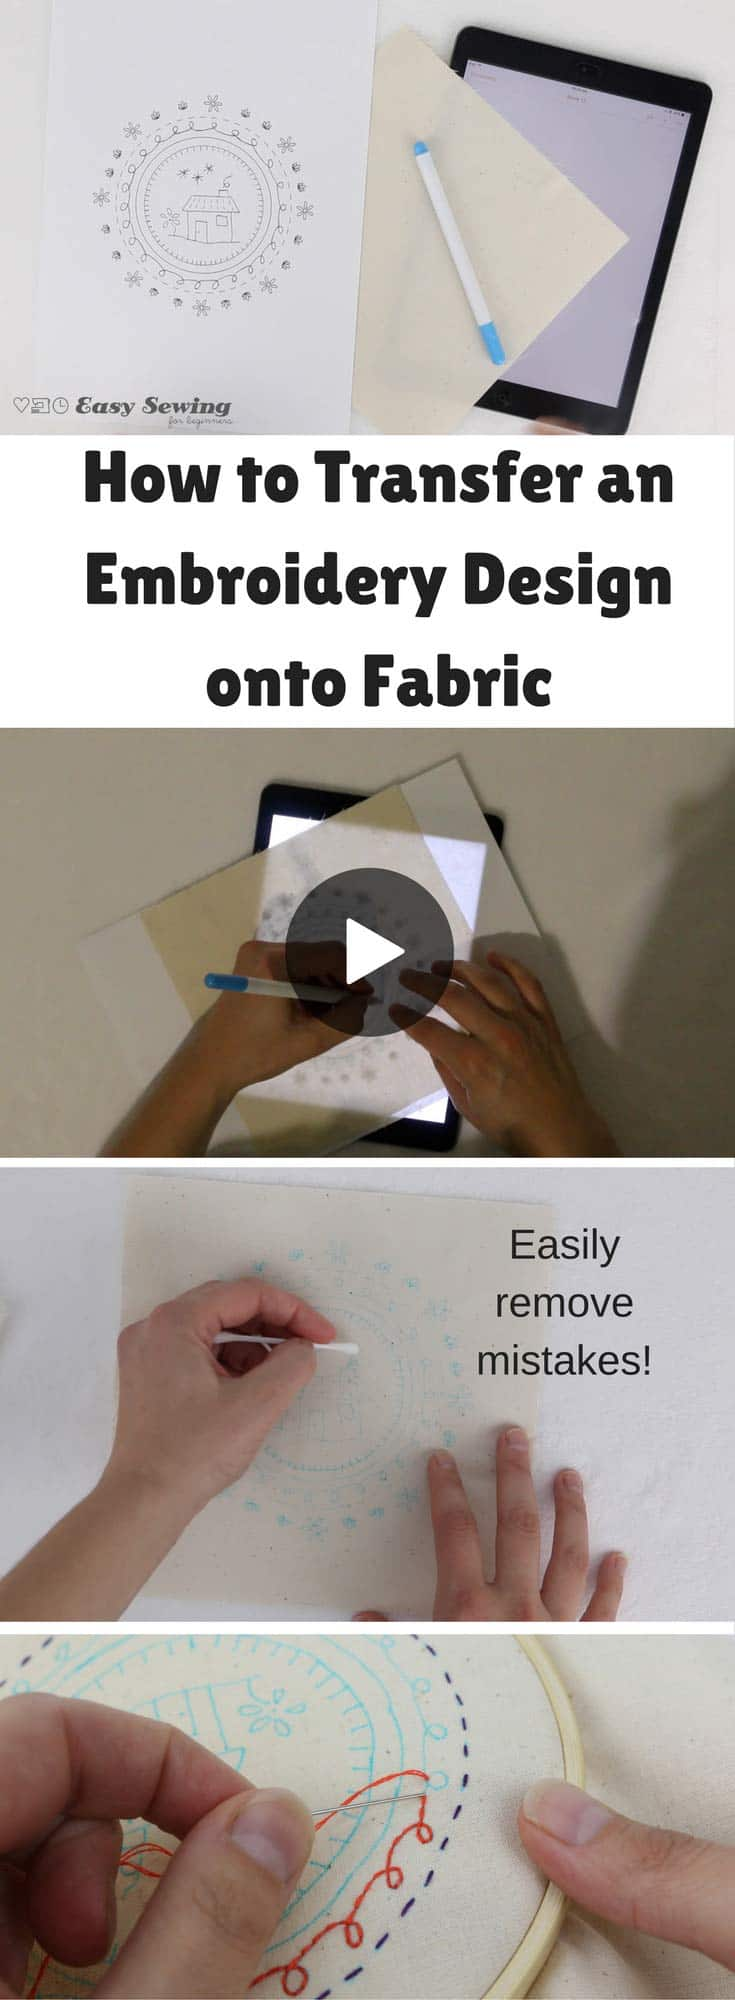 How to Transfer an Embroidery Design onto Fabric - Method 1